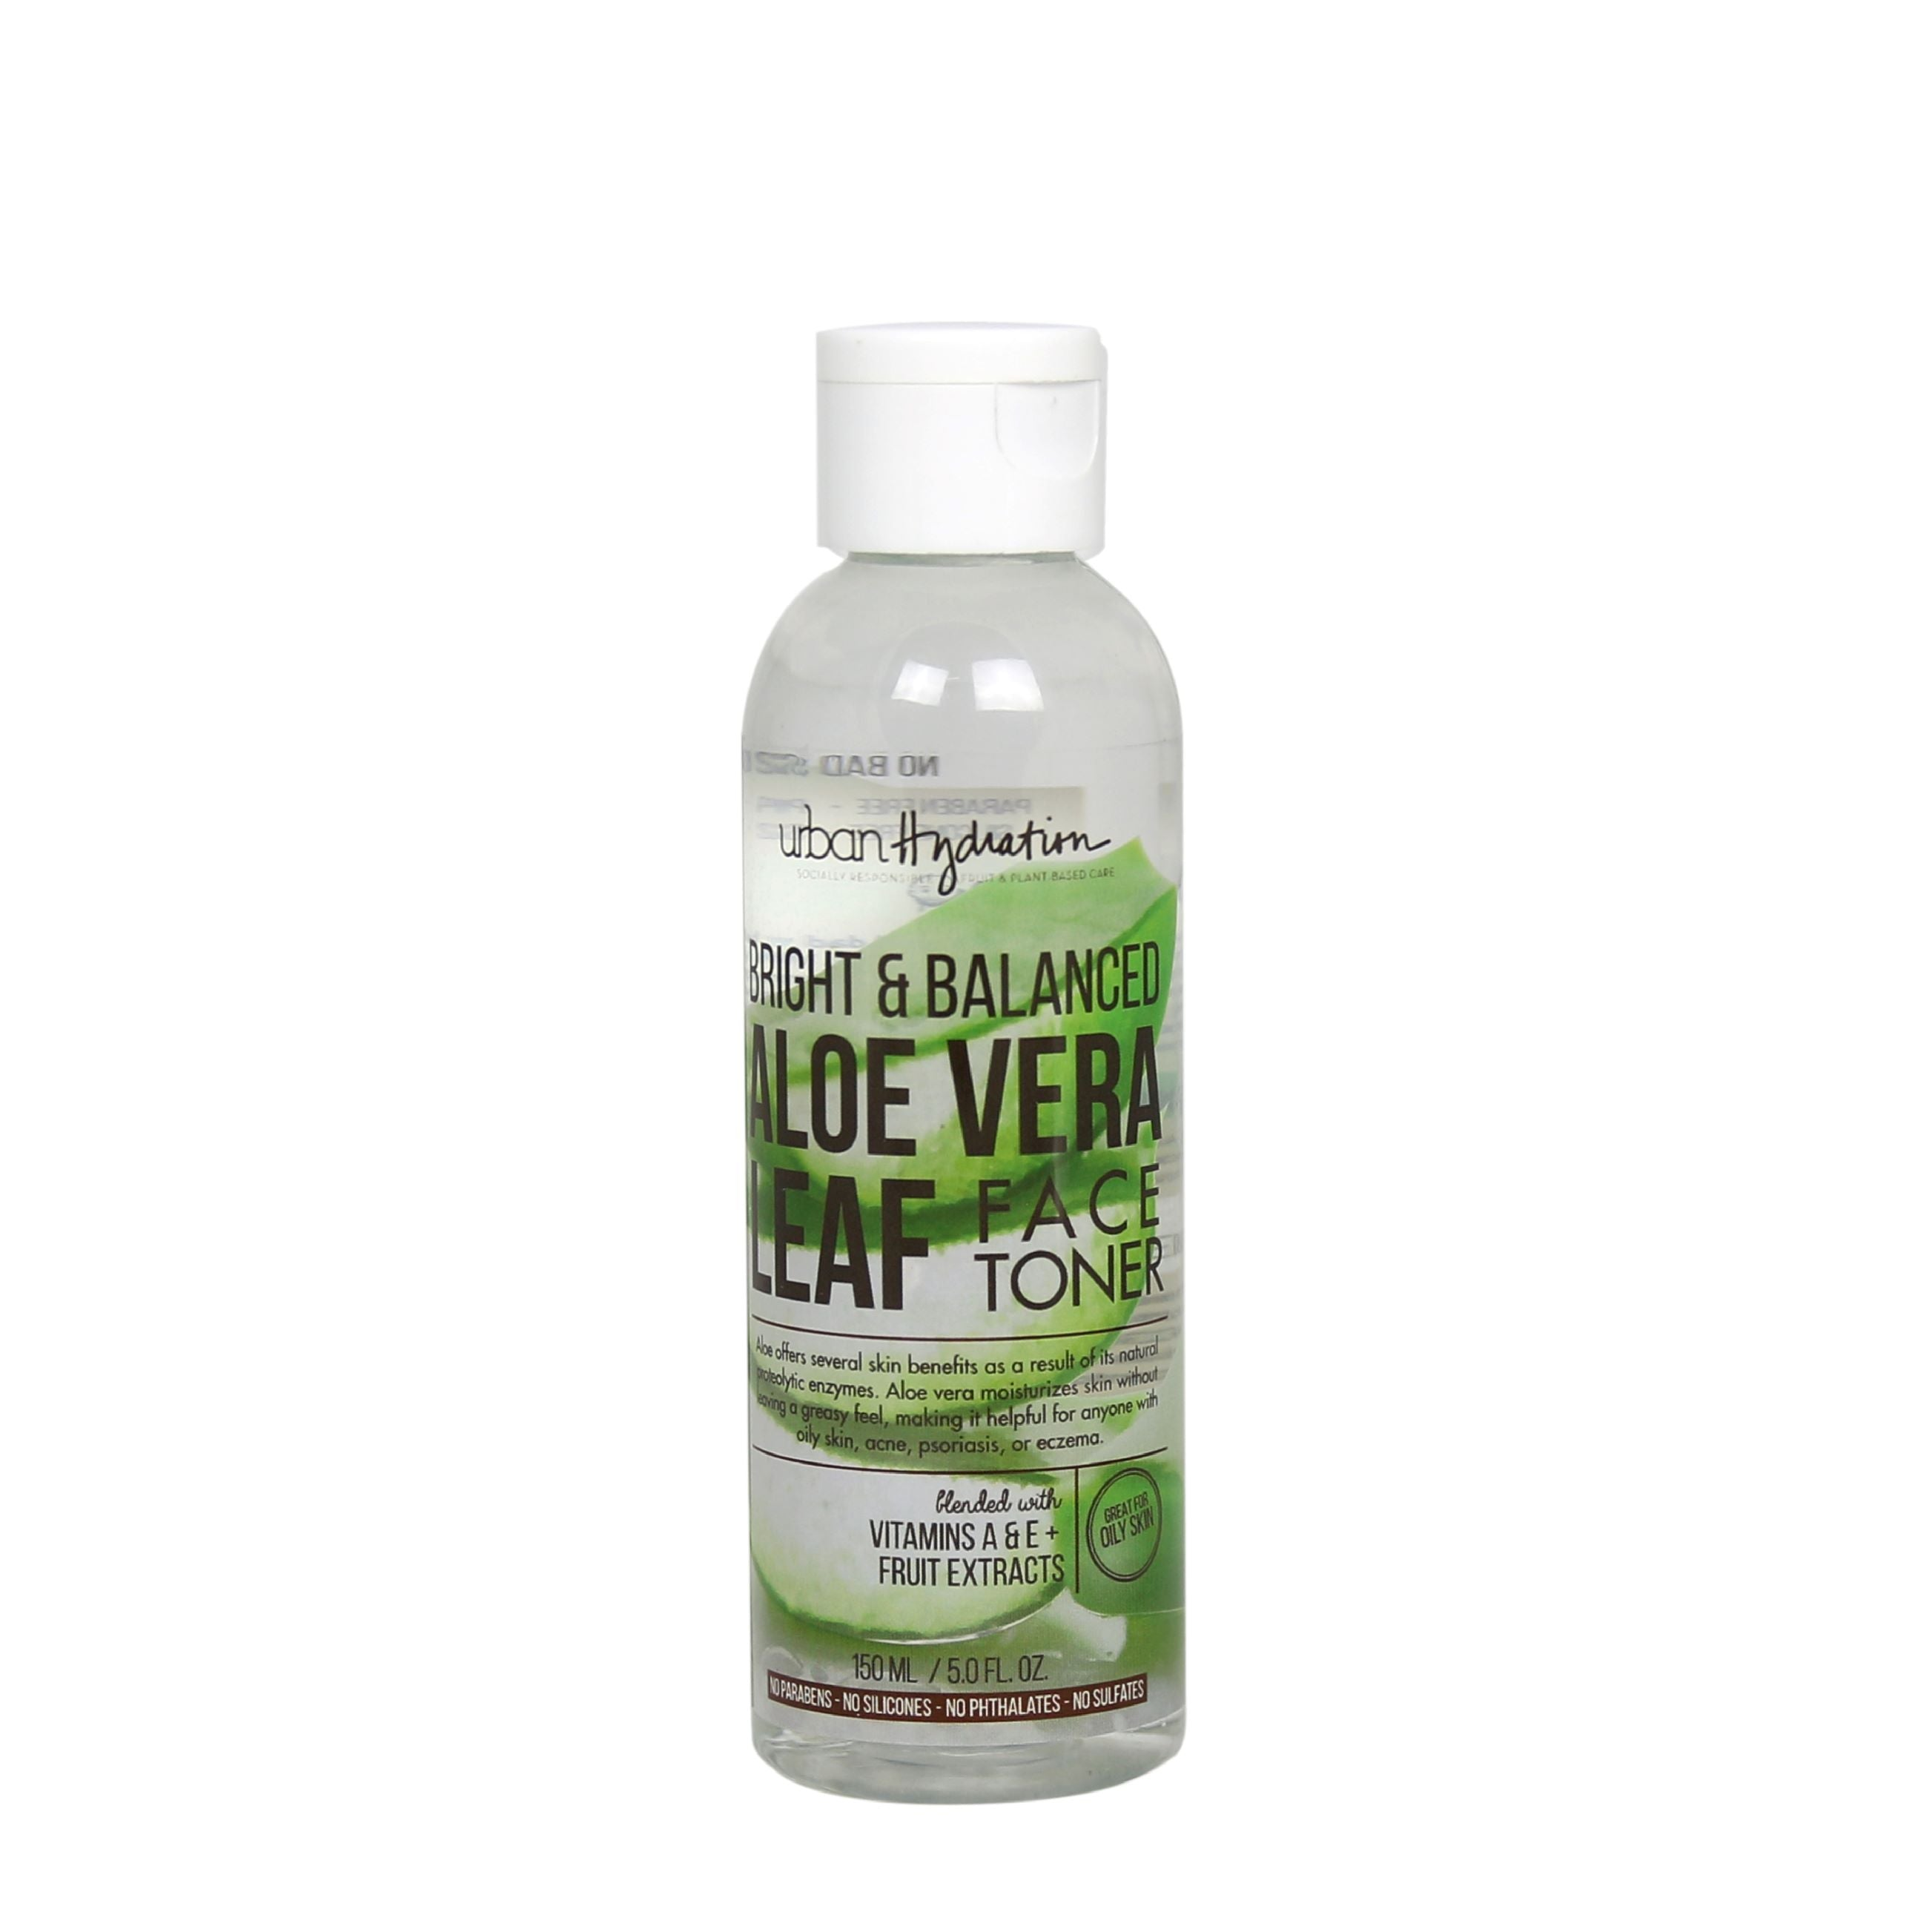 Bright & Balanced Aloe Vera Leaf Face Toner